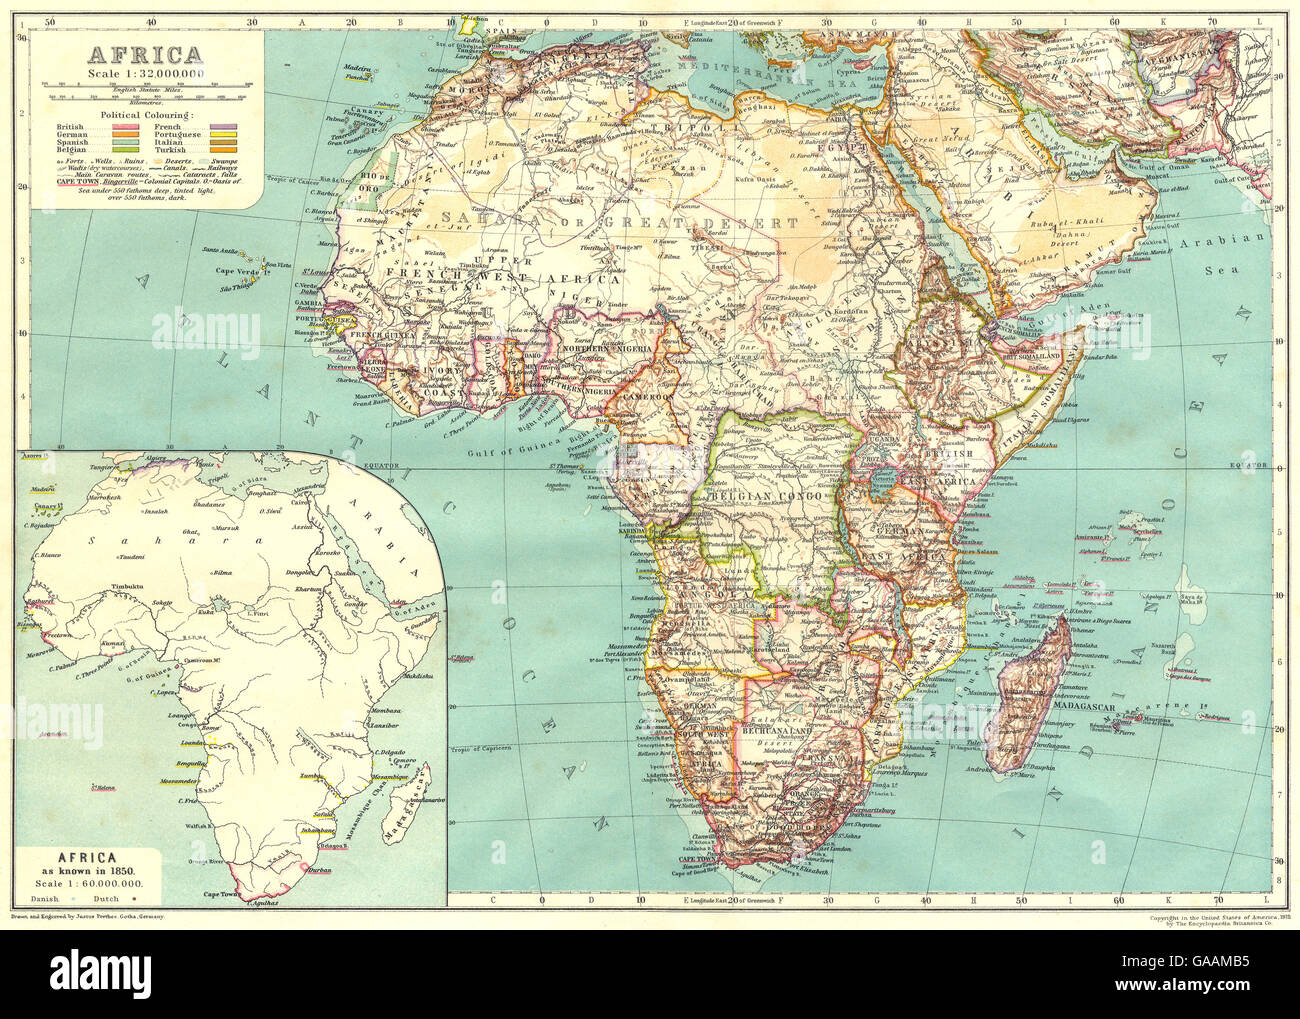 Map Of Africa 1850.Africa Africa Inset Map Of Africa As Known In 1850 1910 Stock